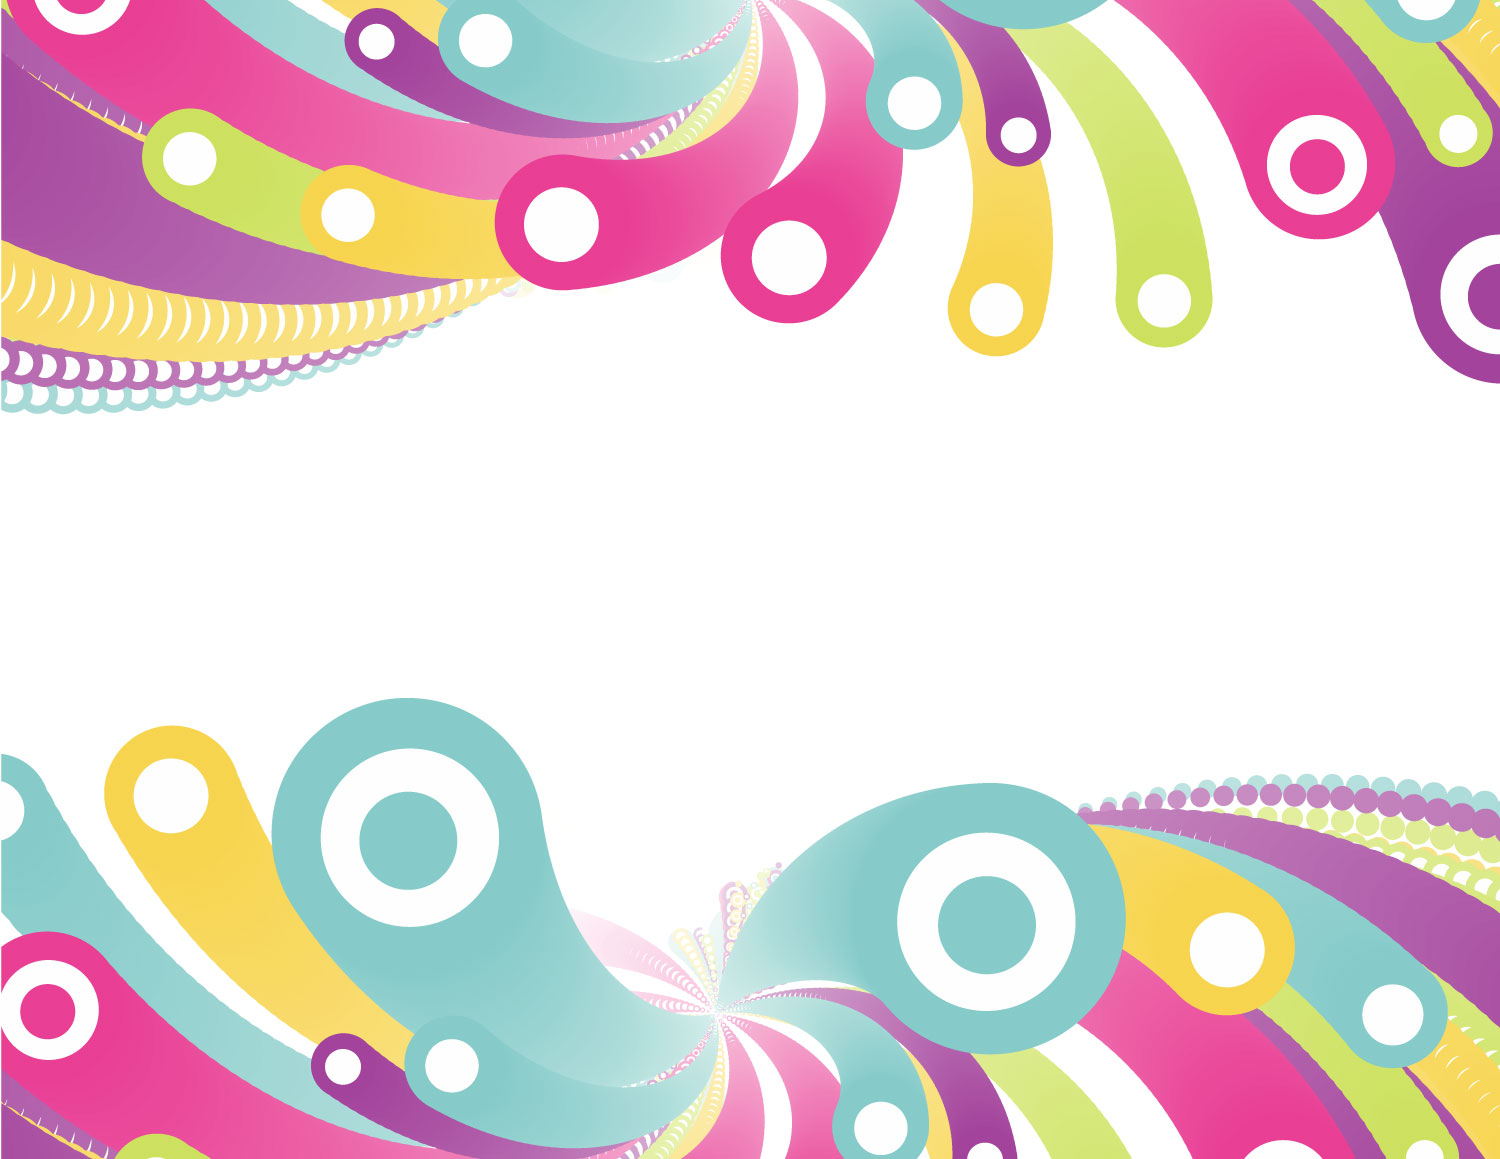 Colored Circles Free PPT Backgrounds for your PowerPoint Templates.